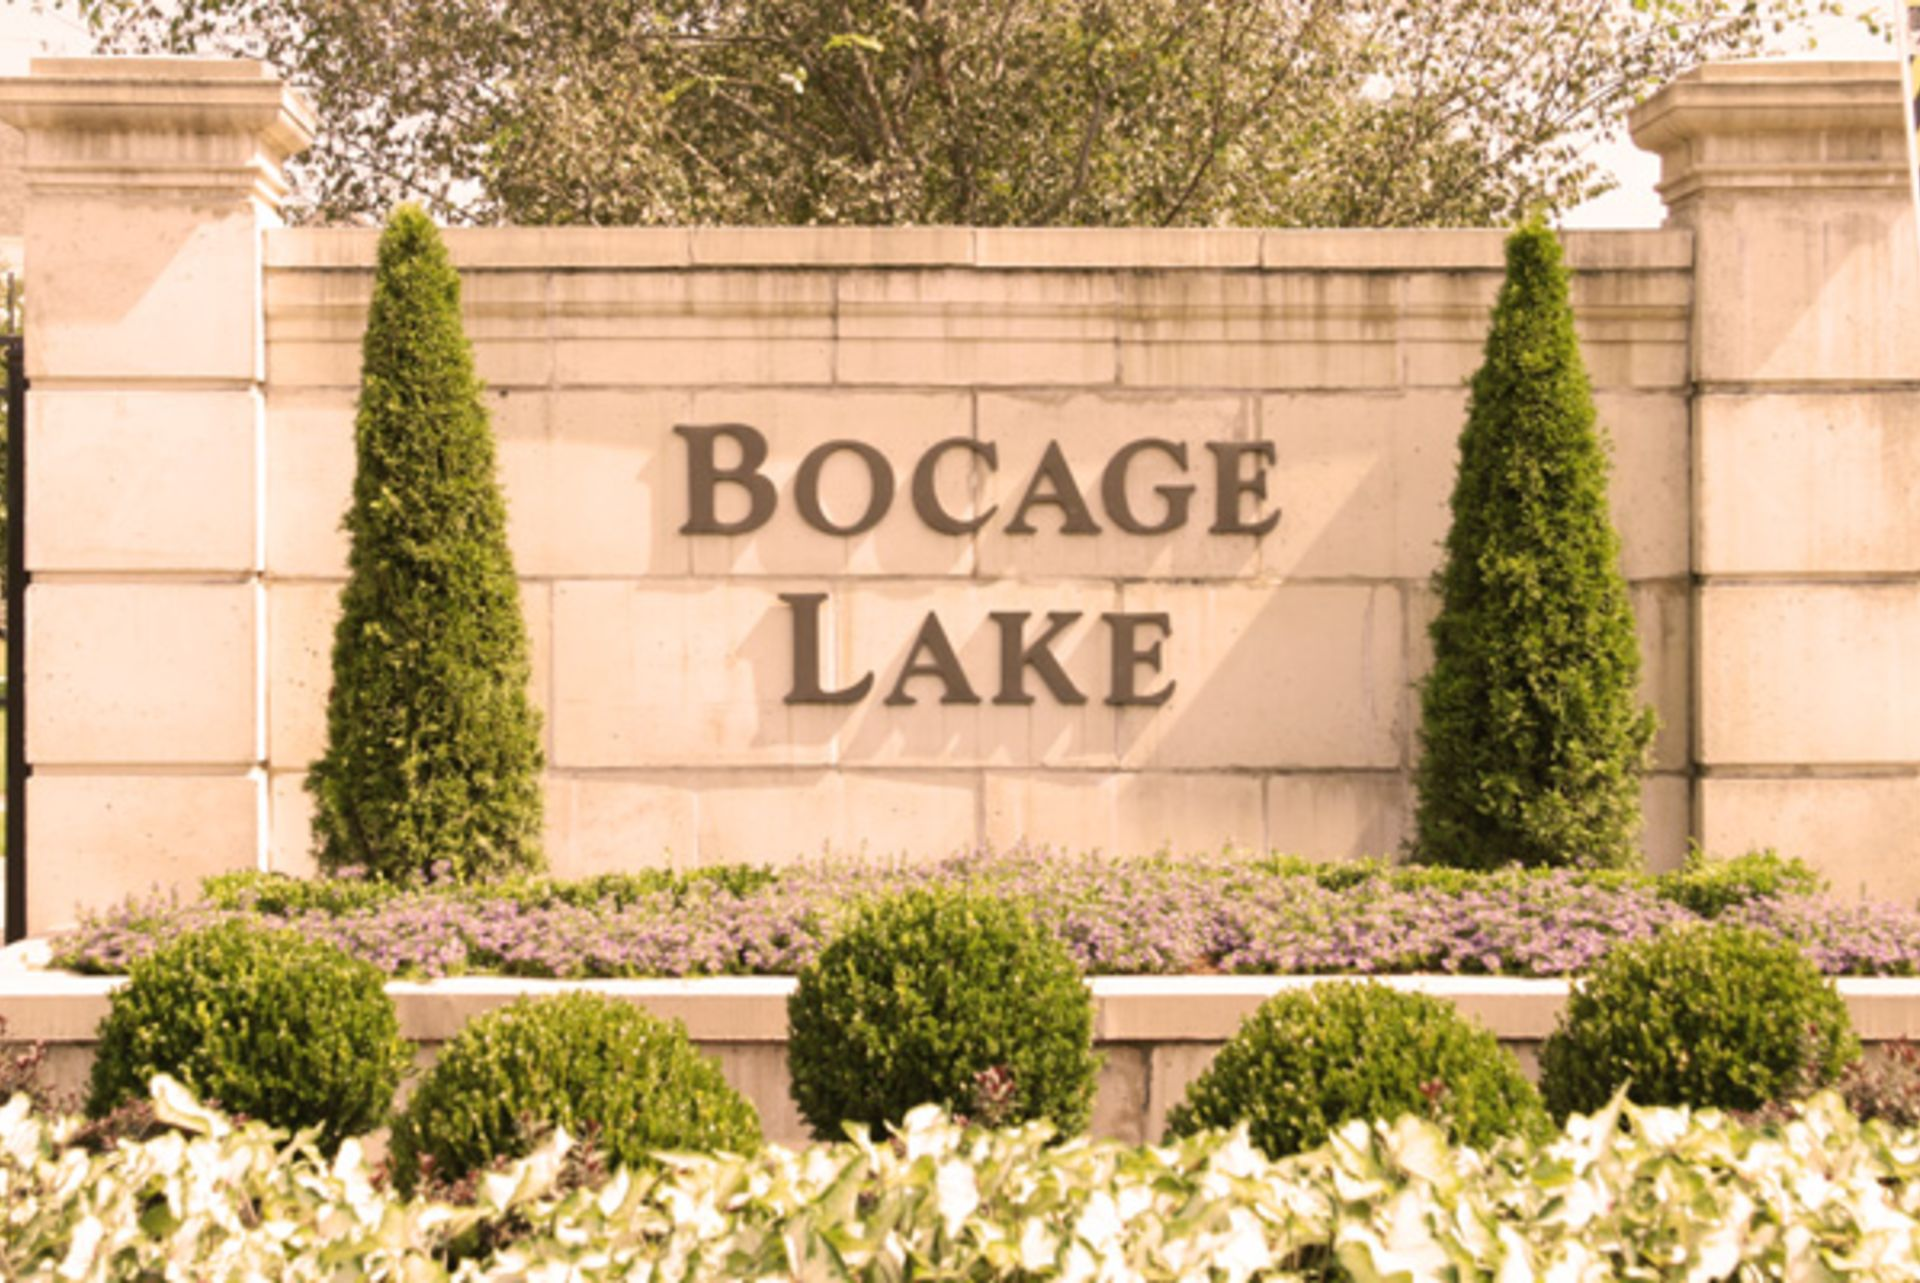 Bocage Lake